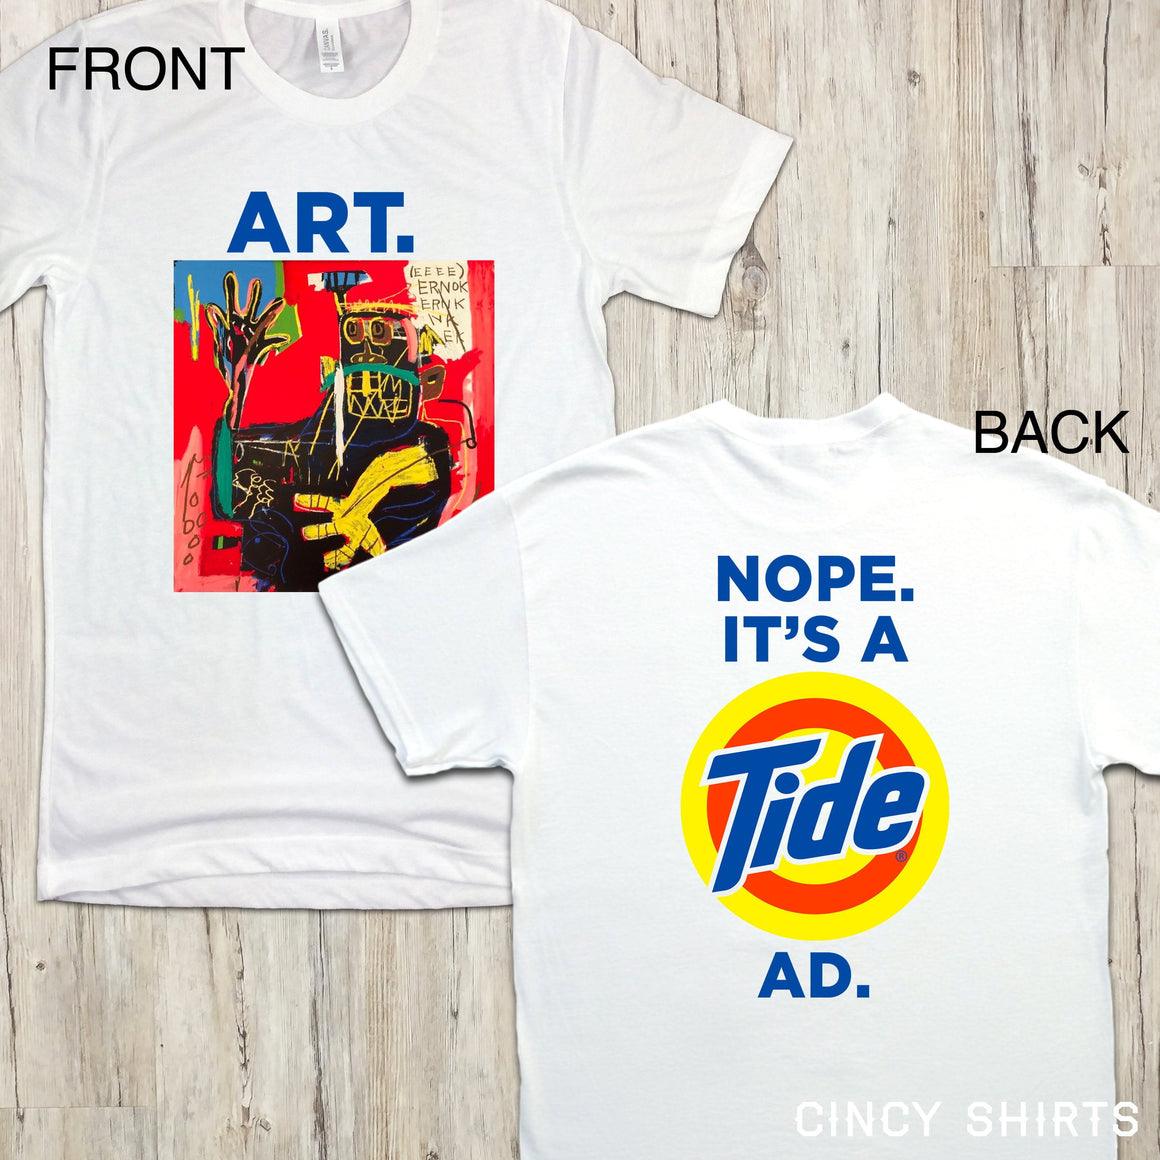 Art. Nope. It's A Tide Ad - Cincy Shirts